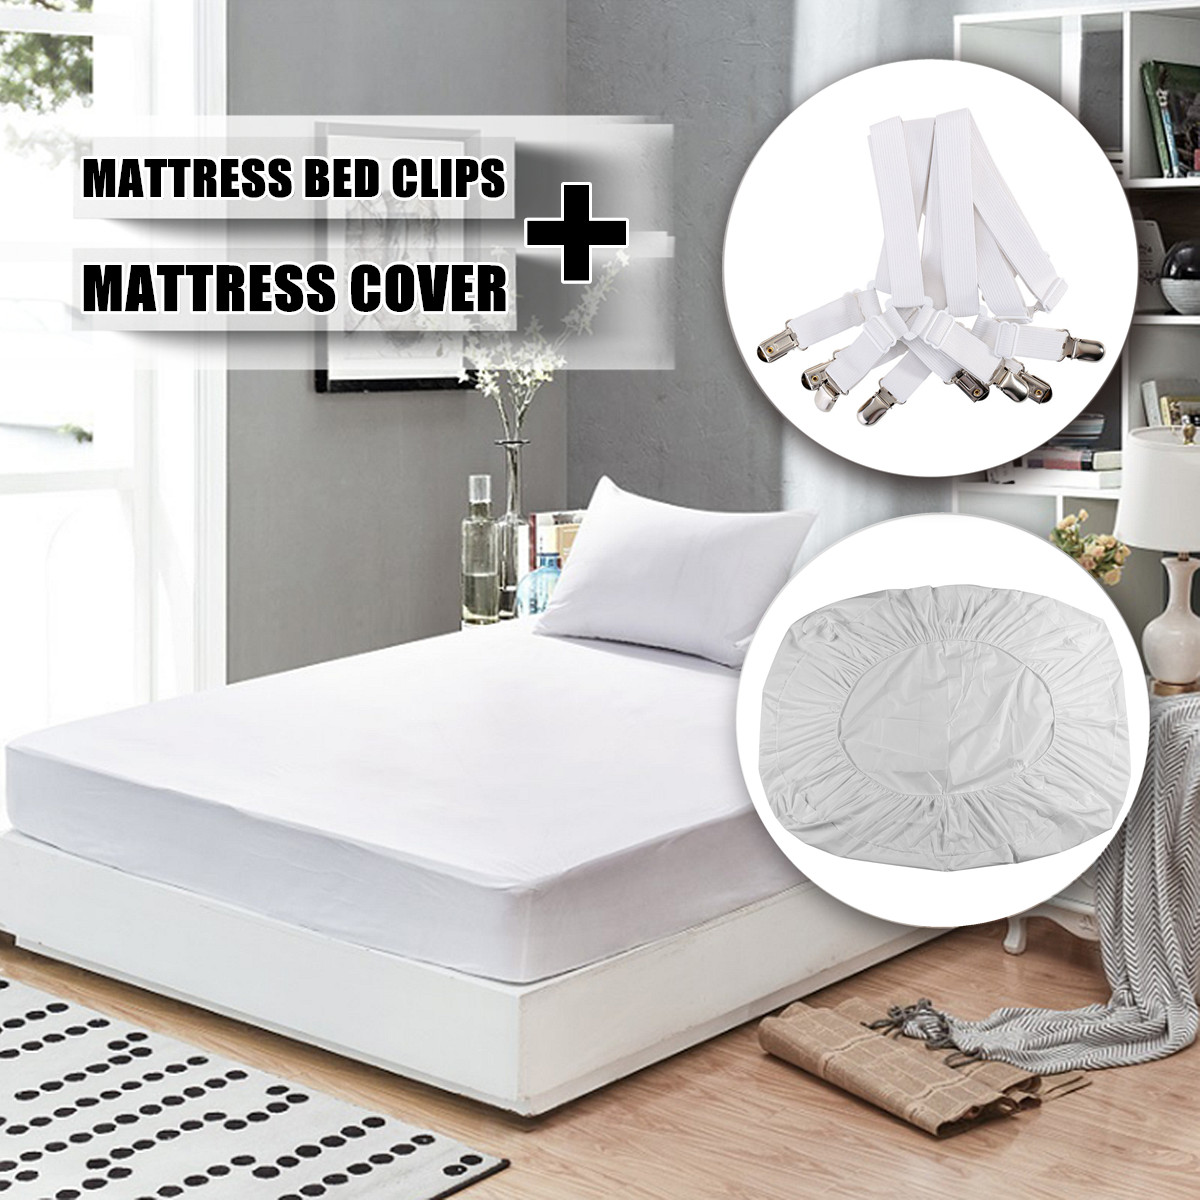 Mattress Covers & Grippers Mattress Protector Cover Waterproof Anti Dust Mite Breathable Fitted Bed Sheet Machine Washable 160x200+30cm/200x200+30cm Products Are Sold Without Limitations Home & Garden